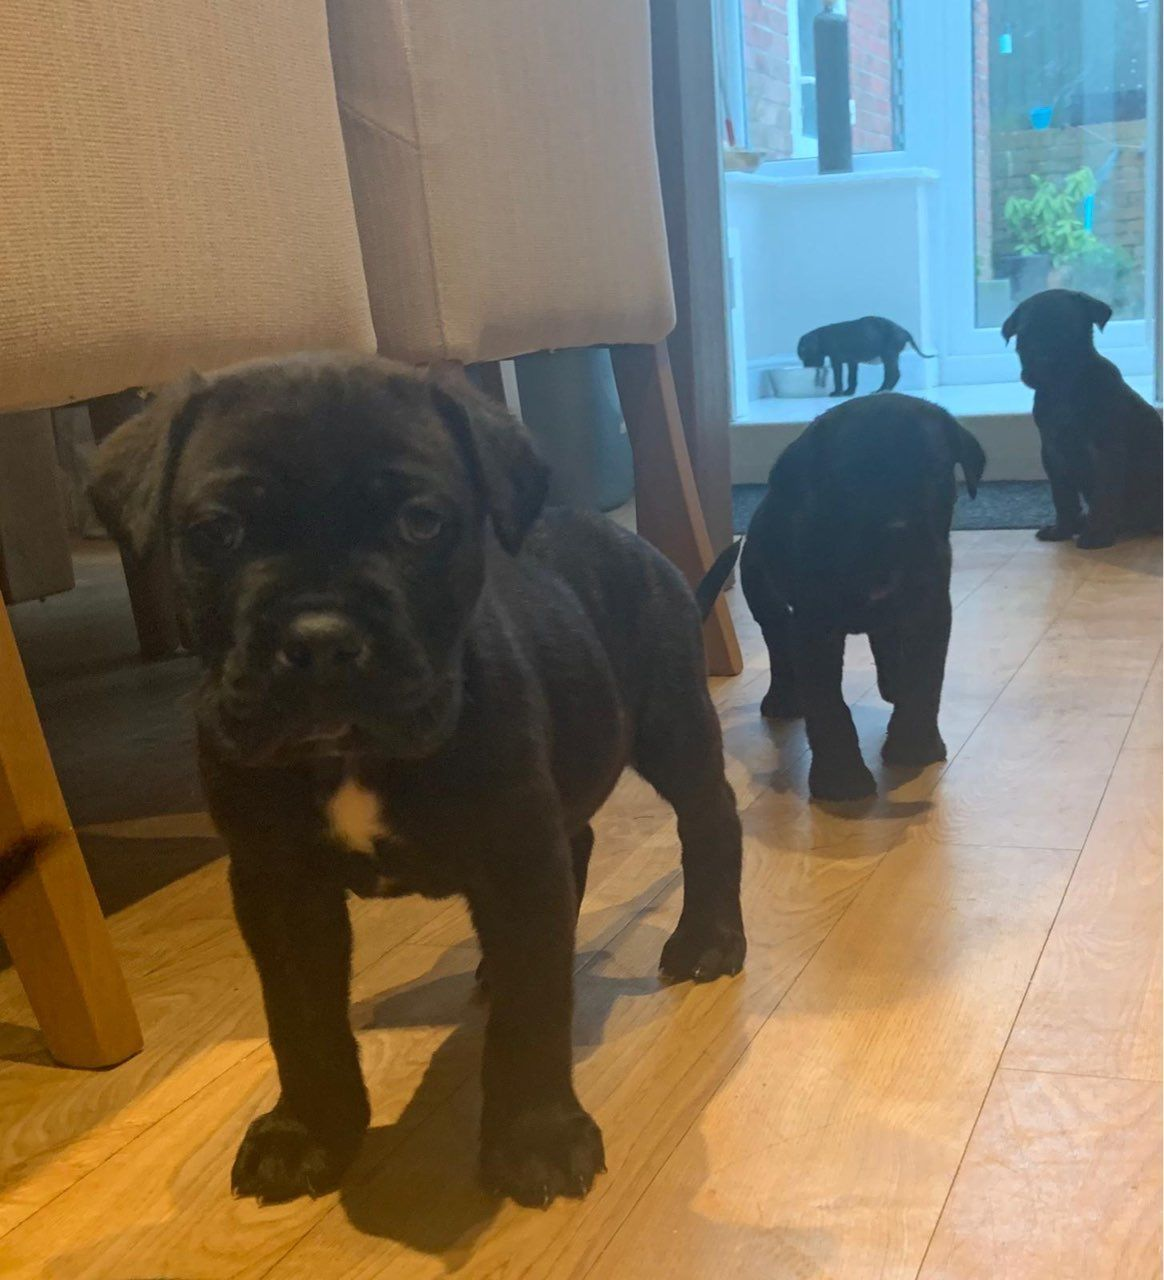 Kuwait Dogs And Puppies Adoption And Sales Email Us At Khaleelsalafi Hot Can Kuwait Dogs And Puppi In 2020 Cane Corso Puppies Puppy Adoption Puppies For Sale